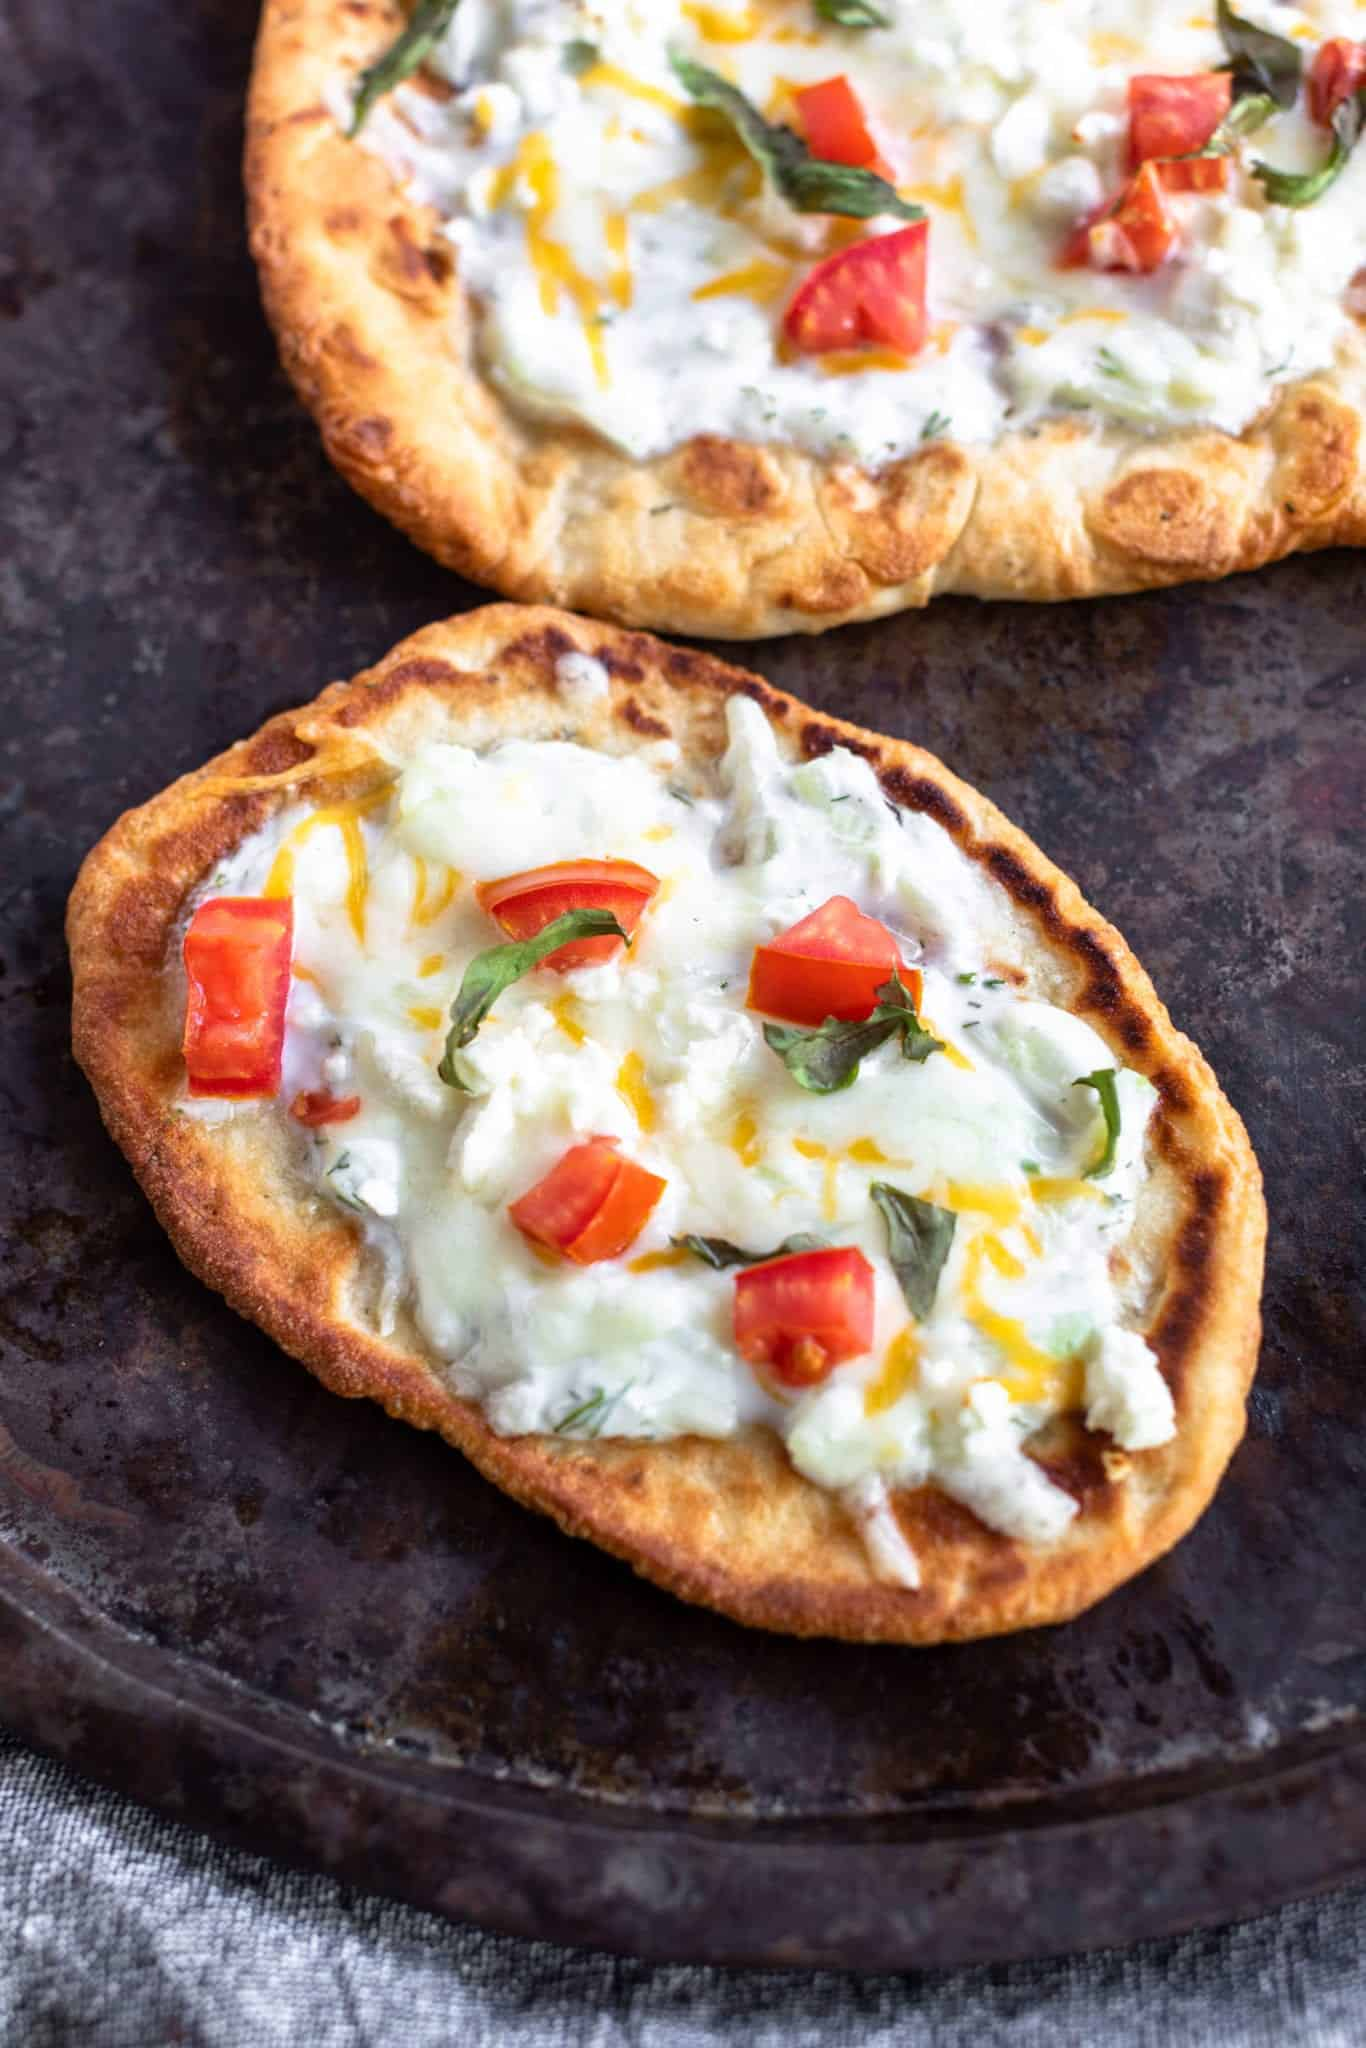 2 Mediterranean Flatbreads with tomato fresh basil and tzatziki on a golden piece of naan